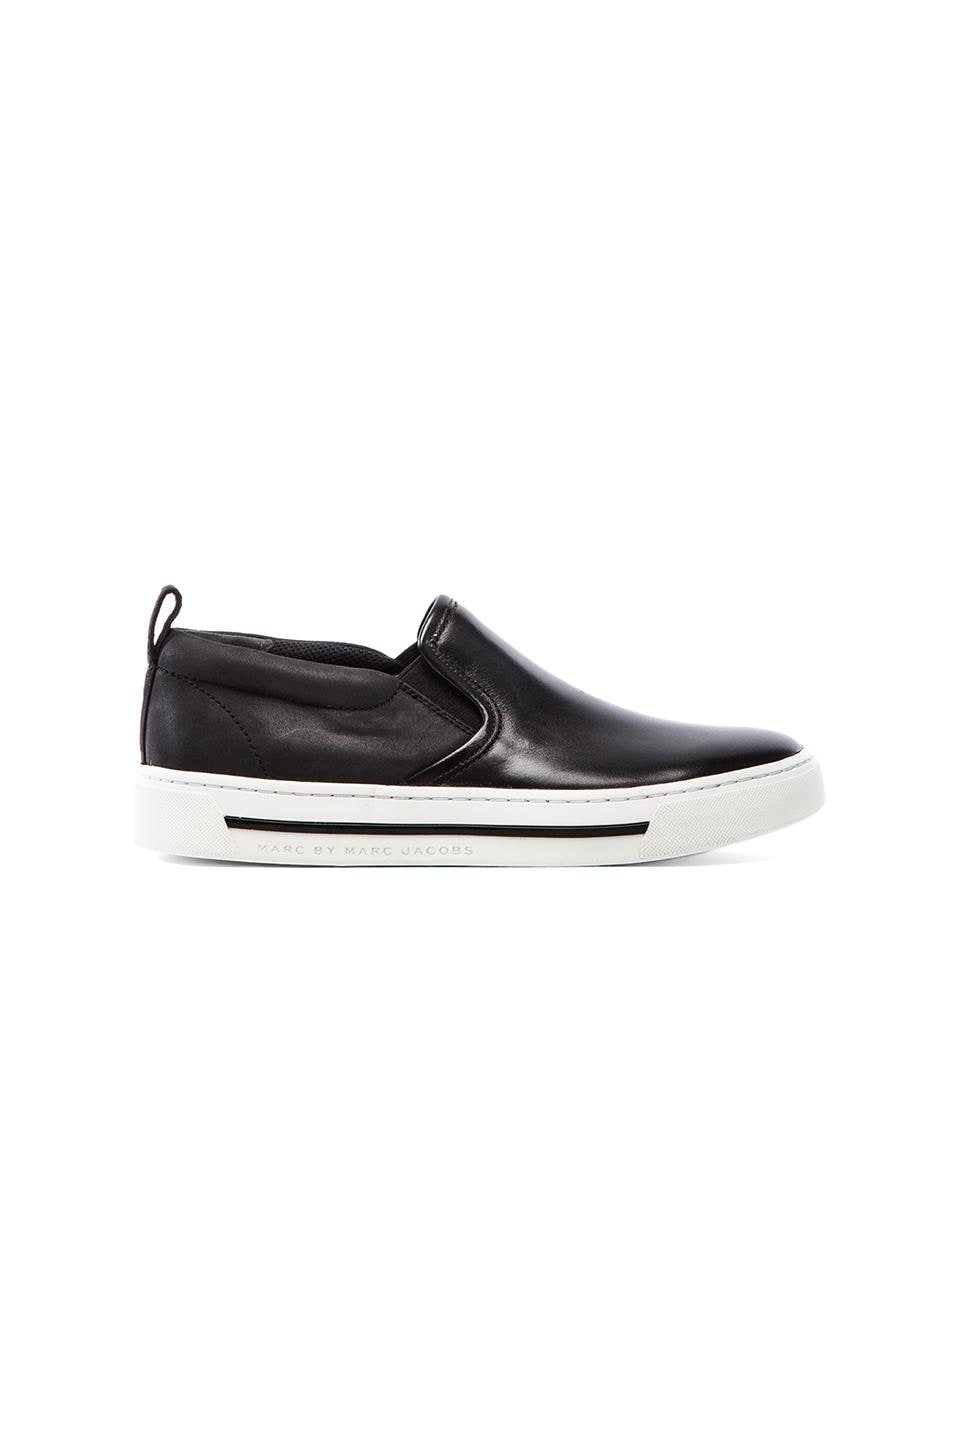 Marc by Marc Jacobs Sneaker in Black